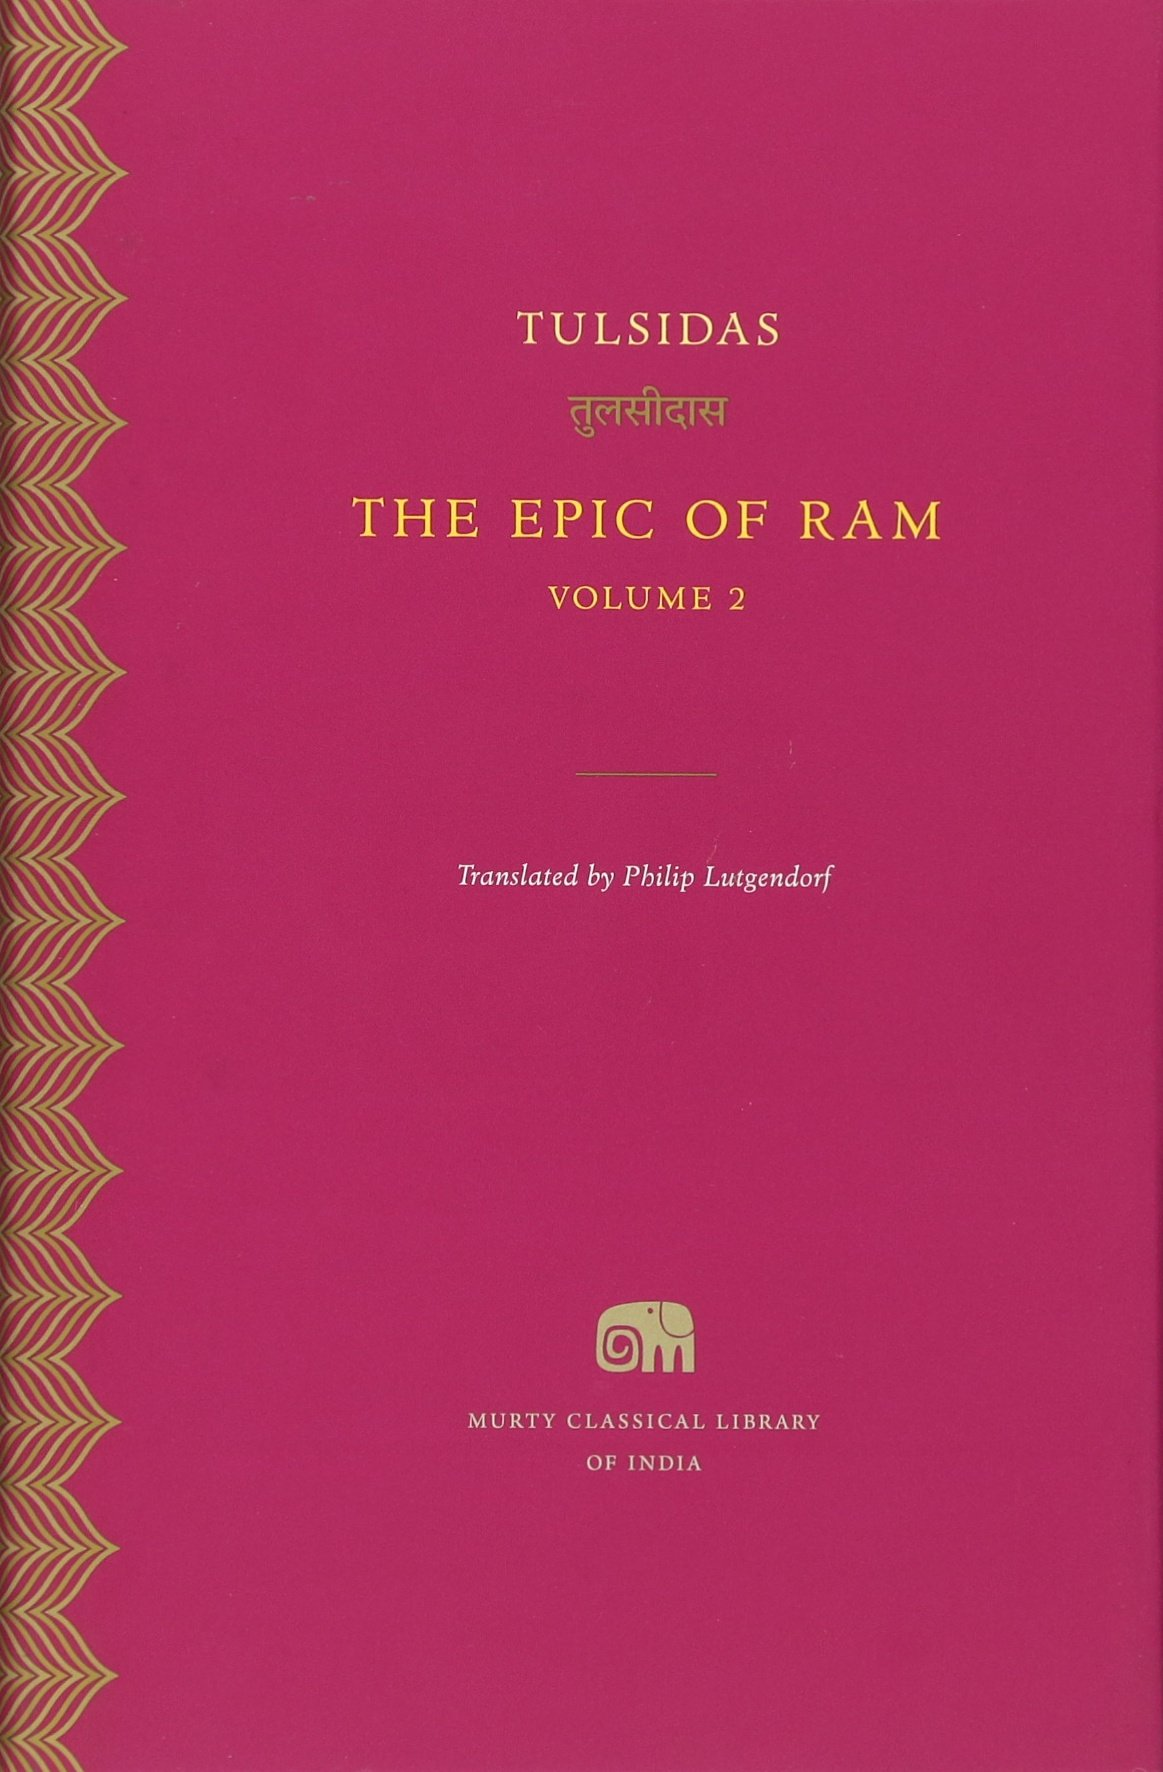 The Epic of Ram, Volume 2 (Murty Classical Library of India) pdf